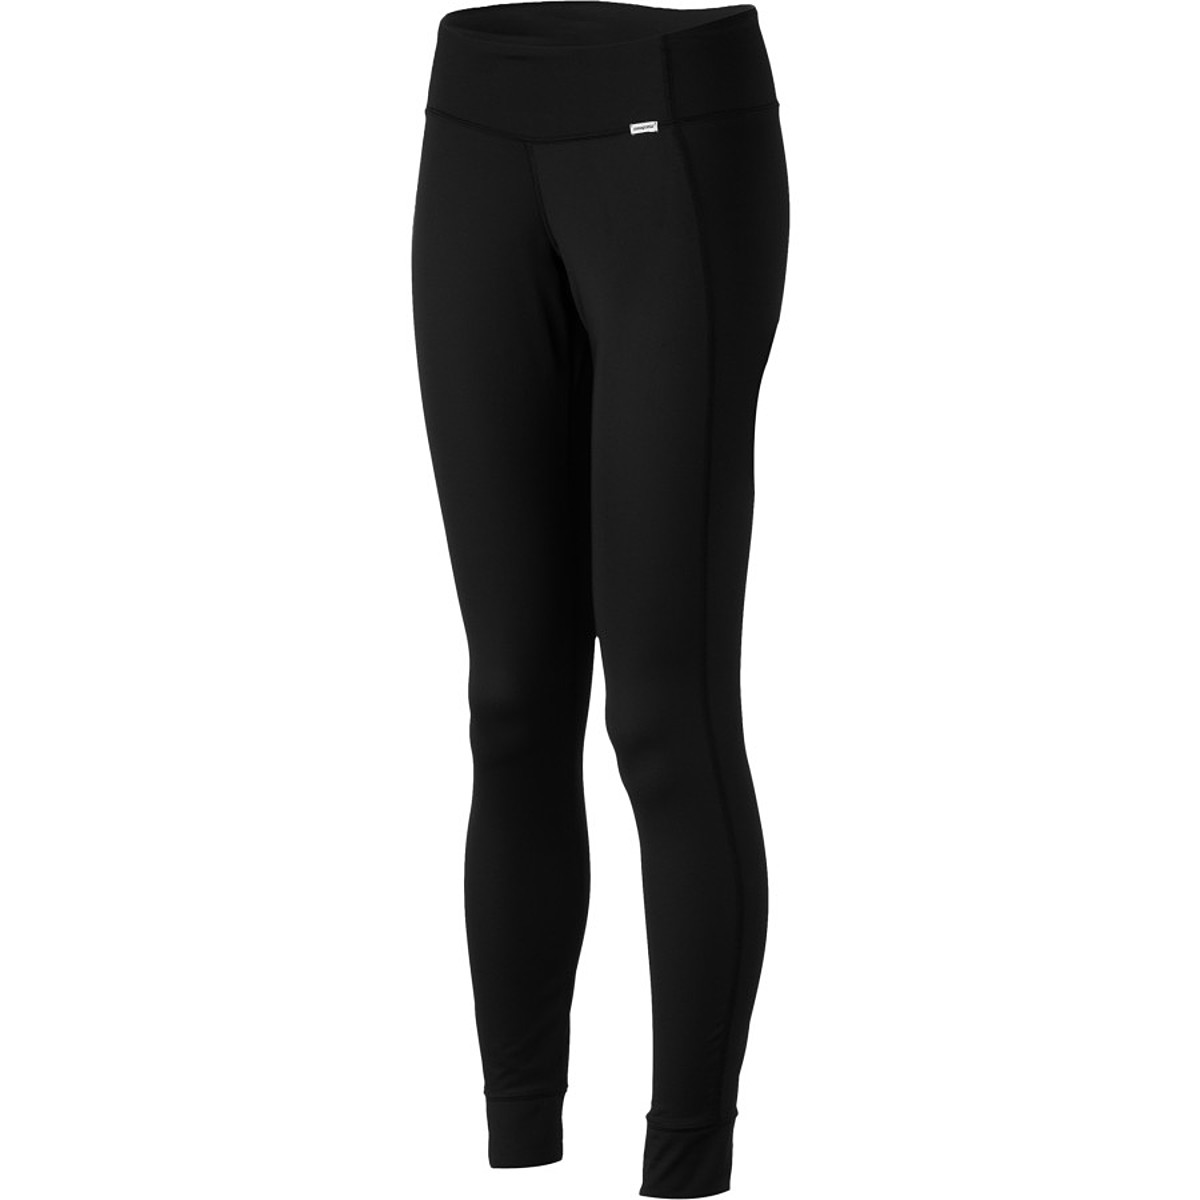 Patagonia Capilene 1 Silkweight Stretch Bottoms